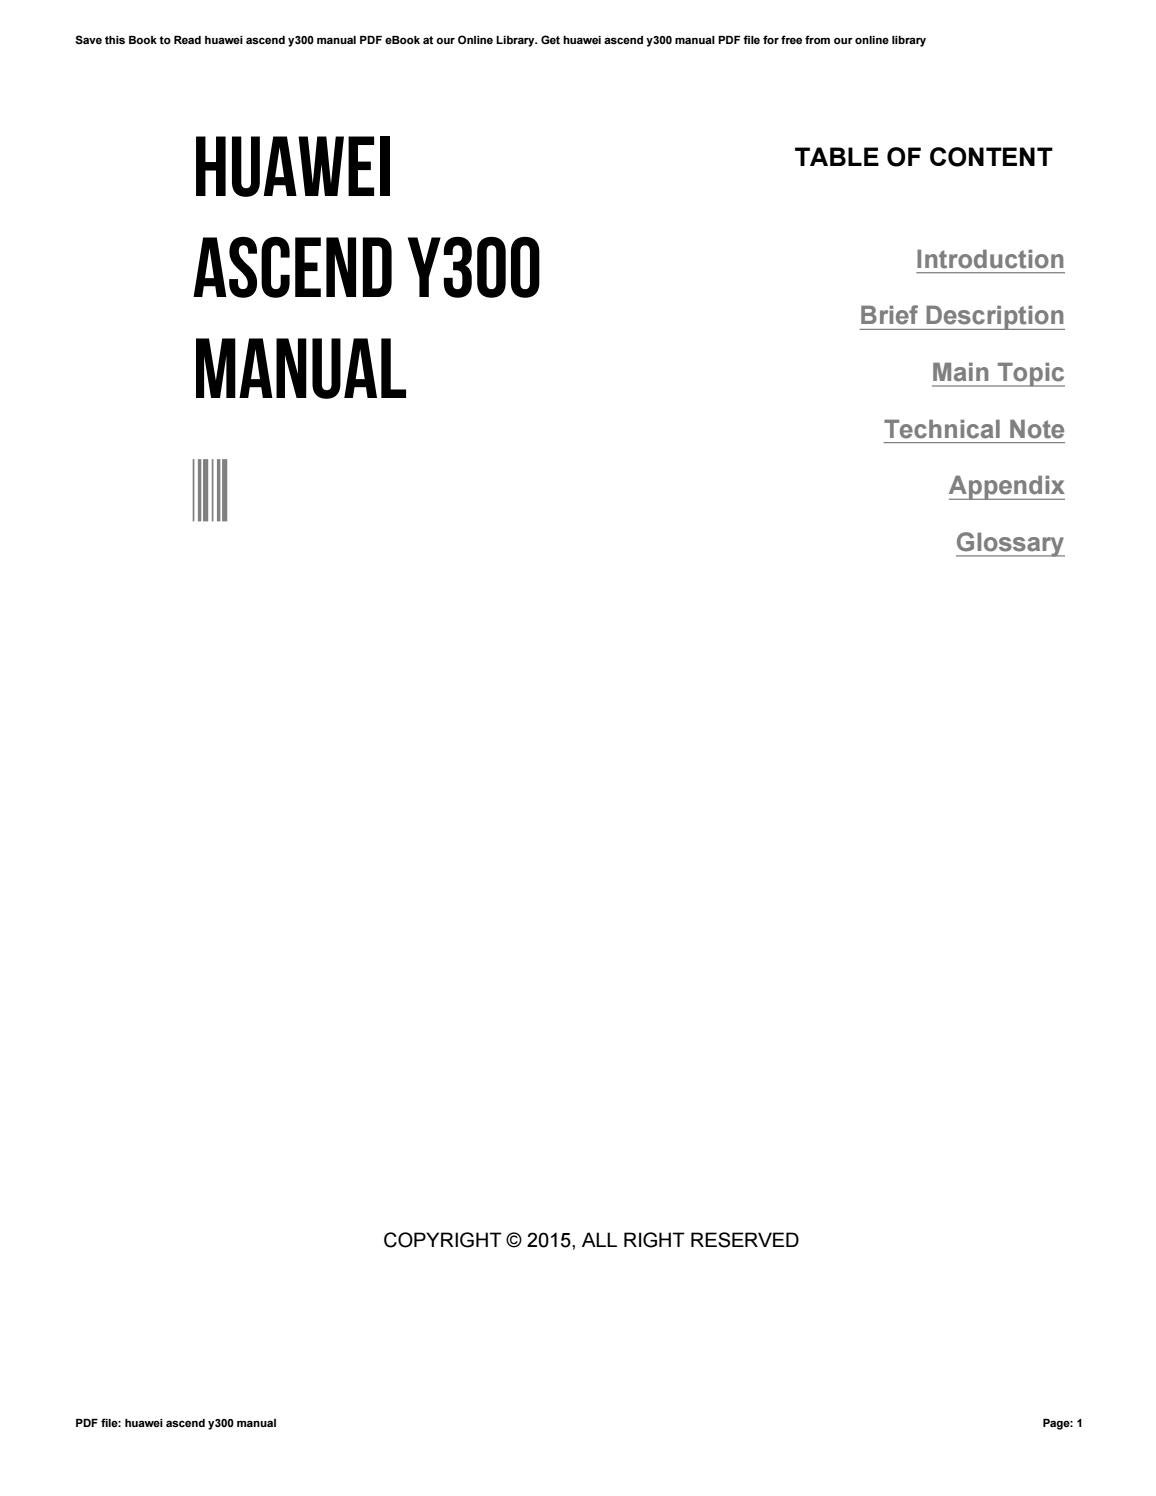 How to read edit pdf xls doc on huawei ascend y300 guide.